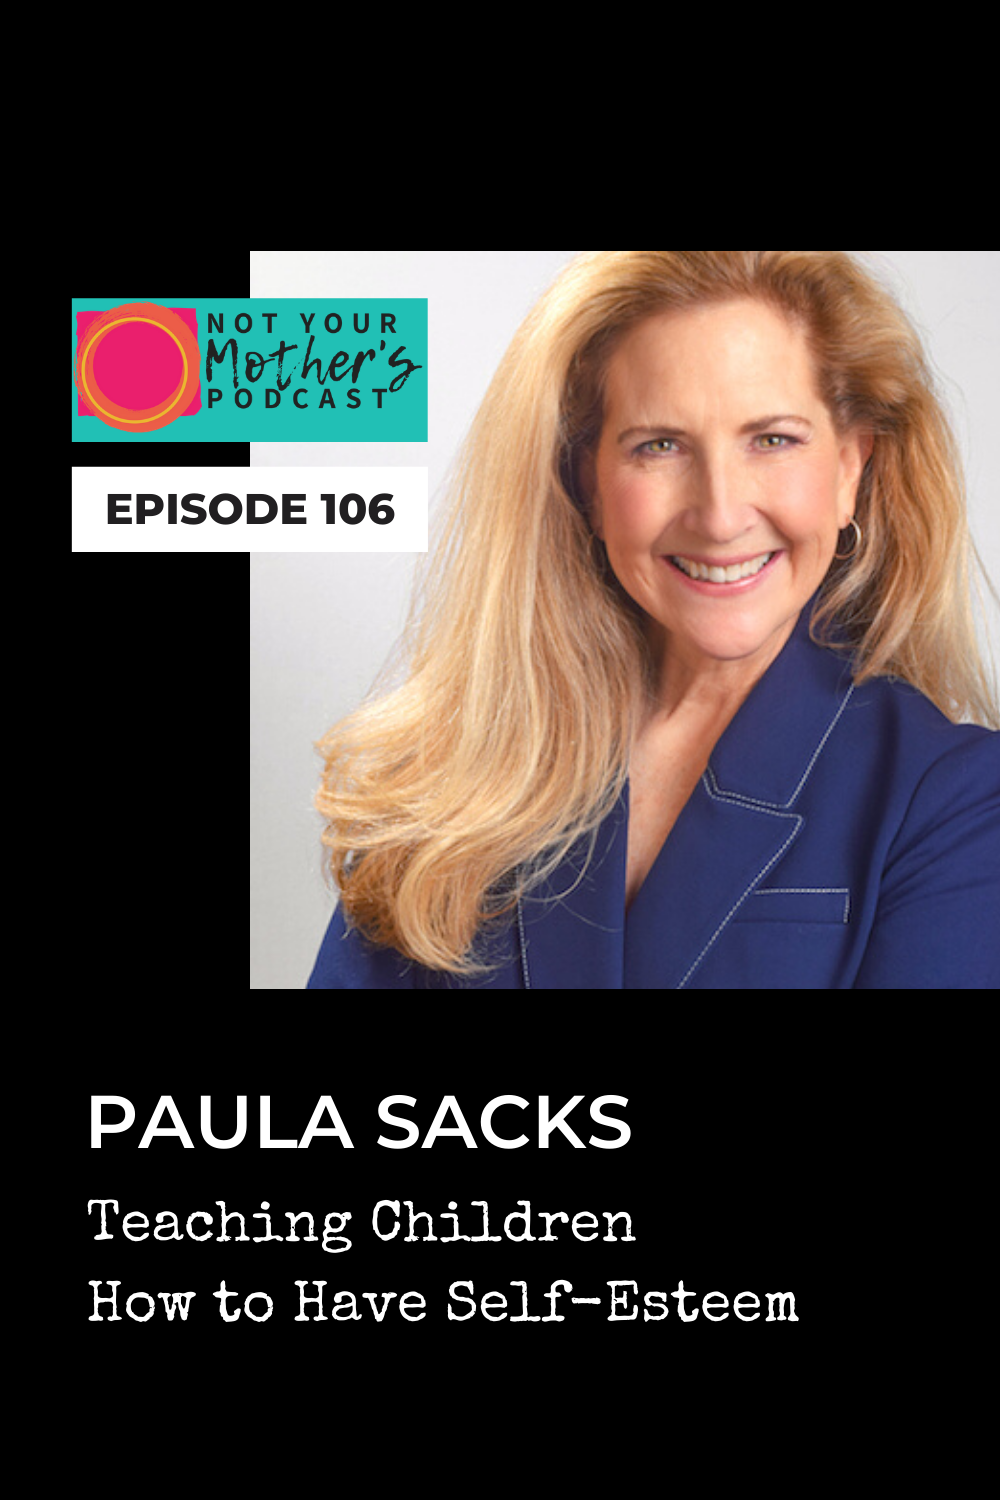 Teaching Children How to Have Self-Esteem with Paula Sacks PIN